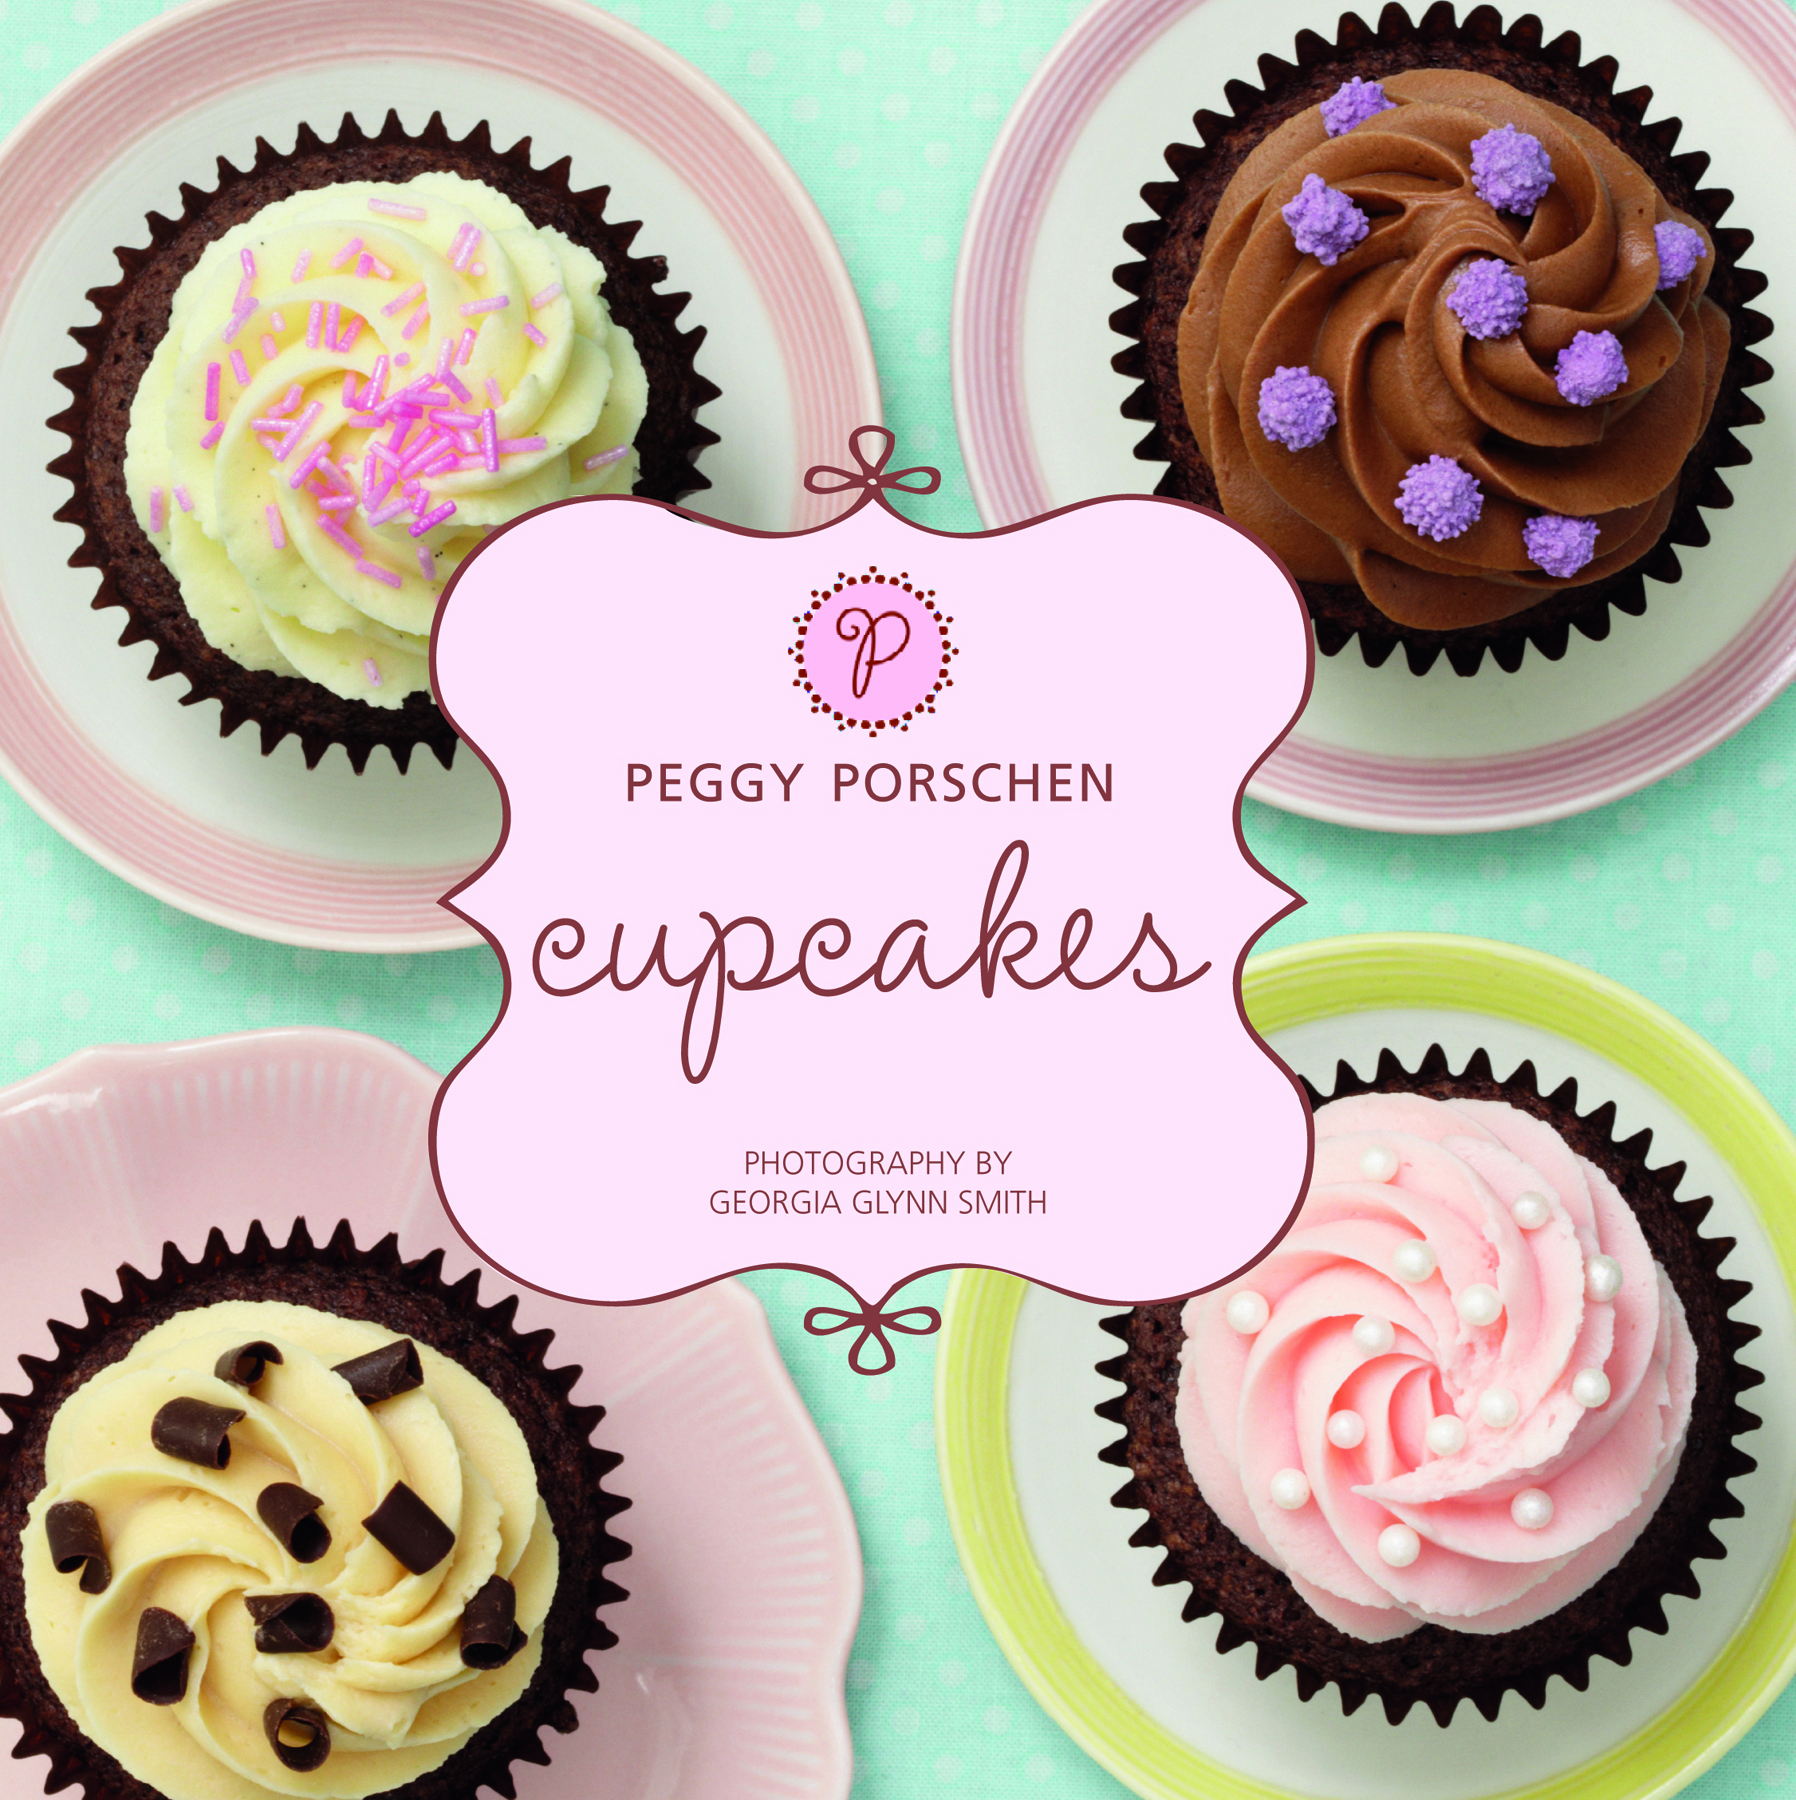 Win a copy of Peggy Porschen's cupcakes